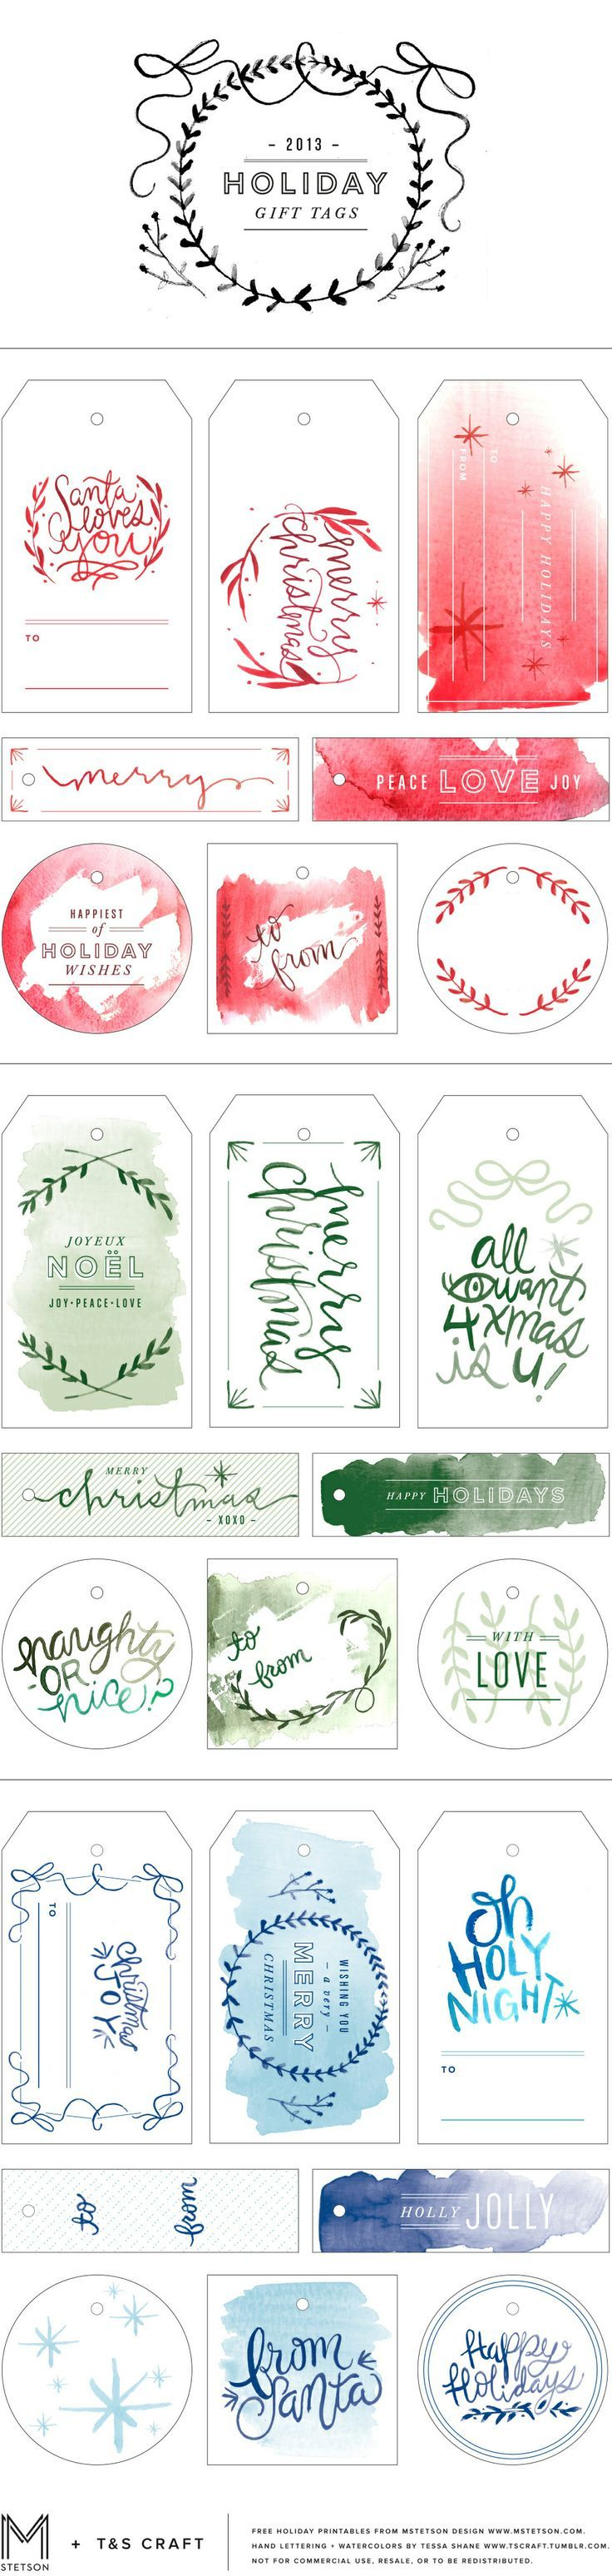 watercolor holiday gift tag printables | Weihnachtsgefühle, Karten ...